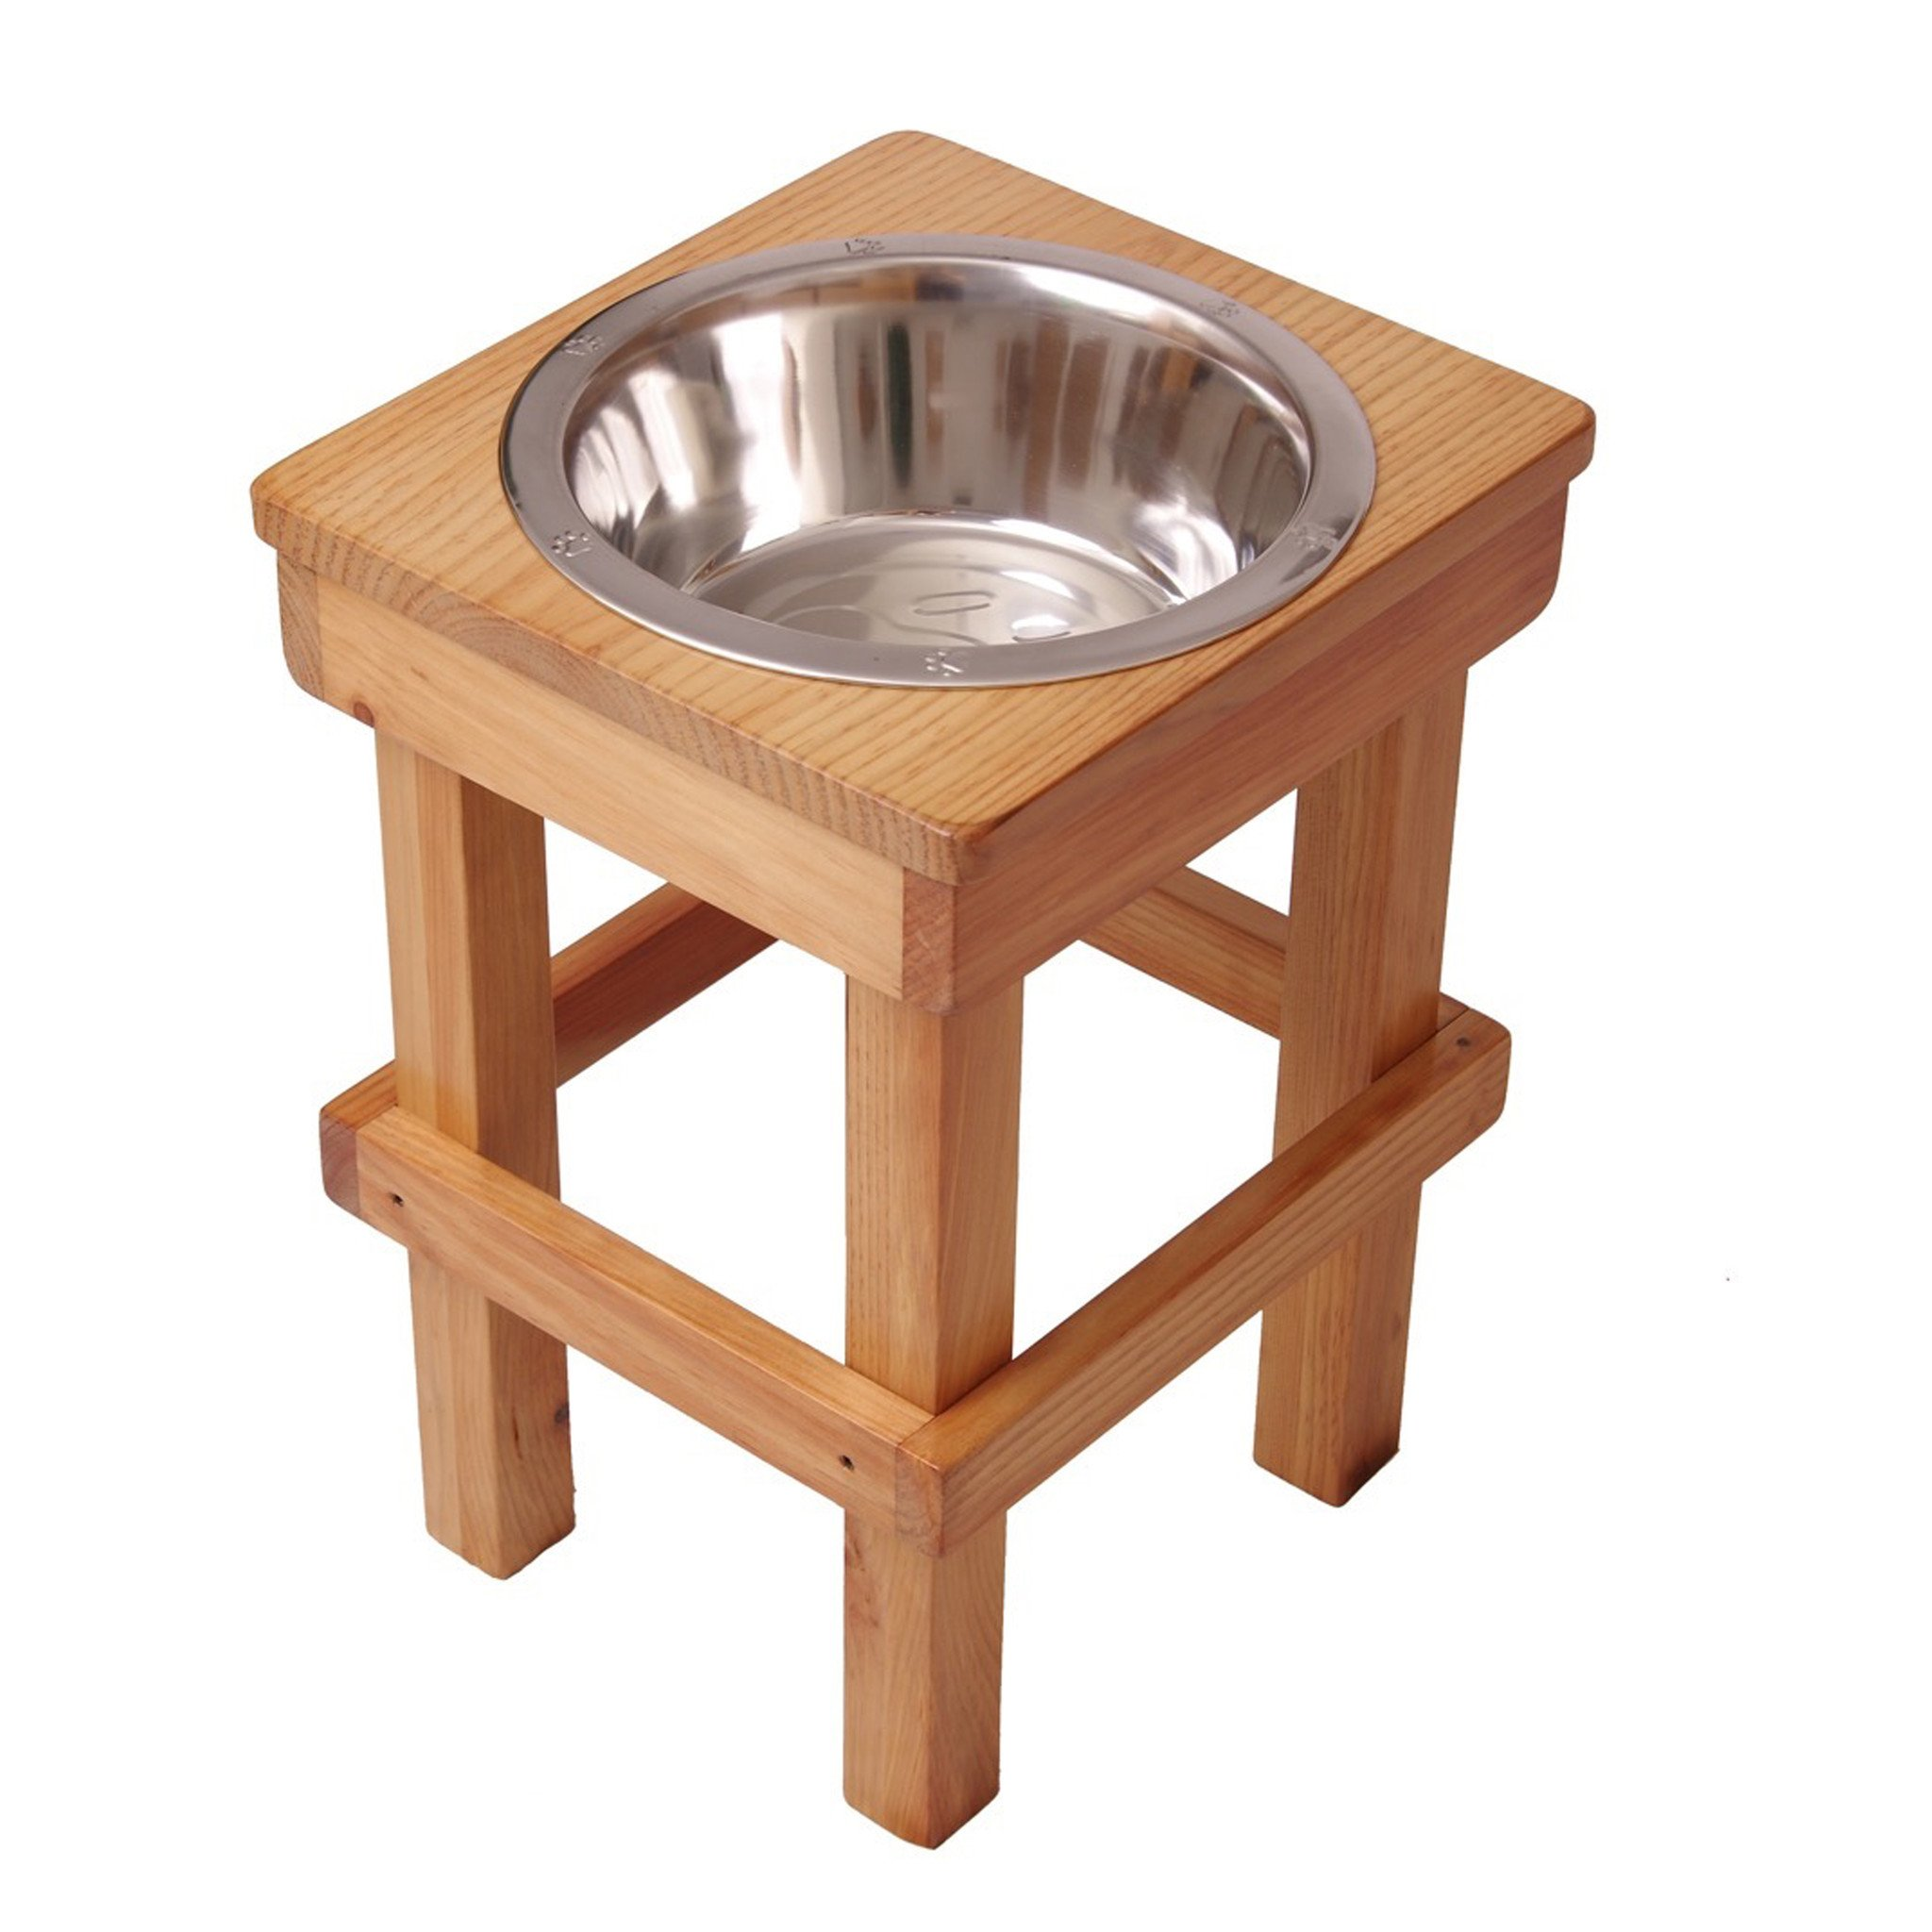 new sizes raised dog dish il products triple double elevated newfoundland single metal fullxfull bowl holder art or feeder